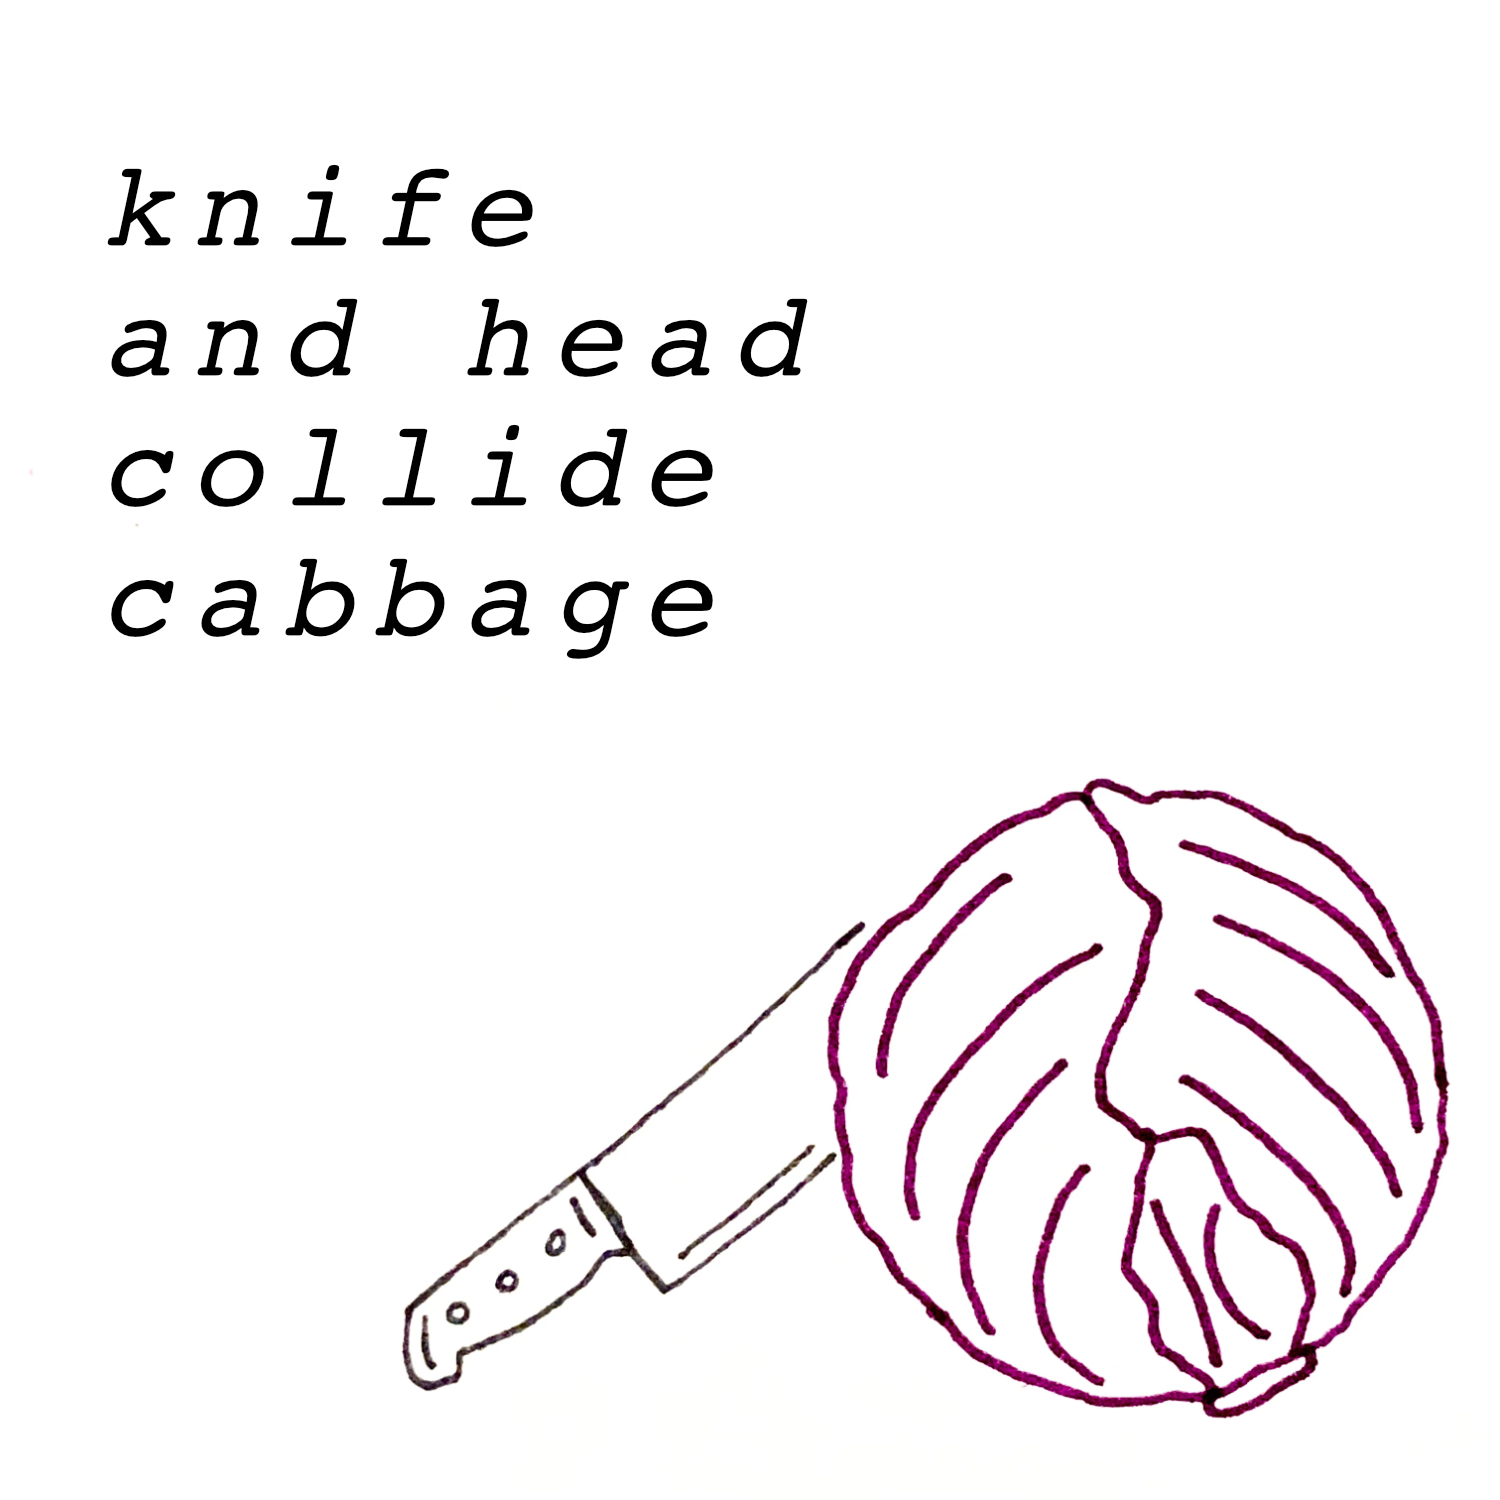 knife and head collide cabbage